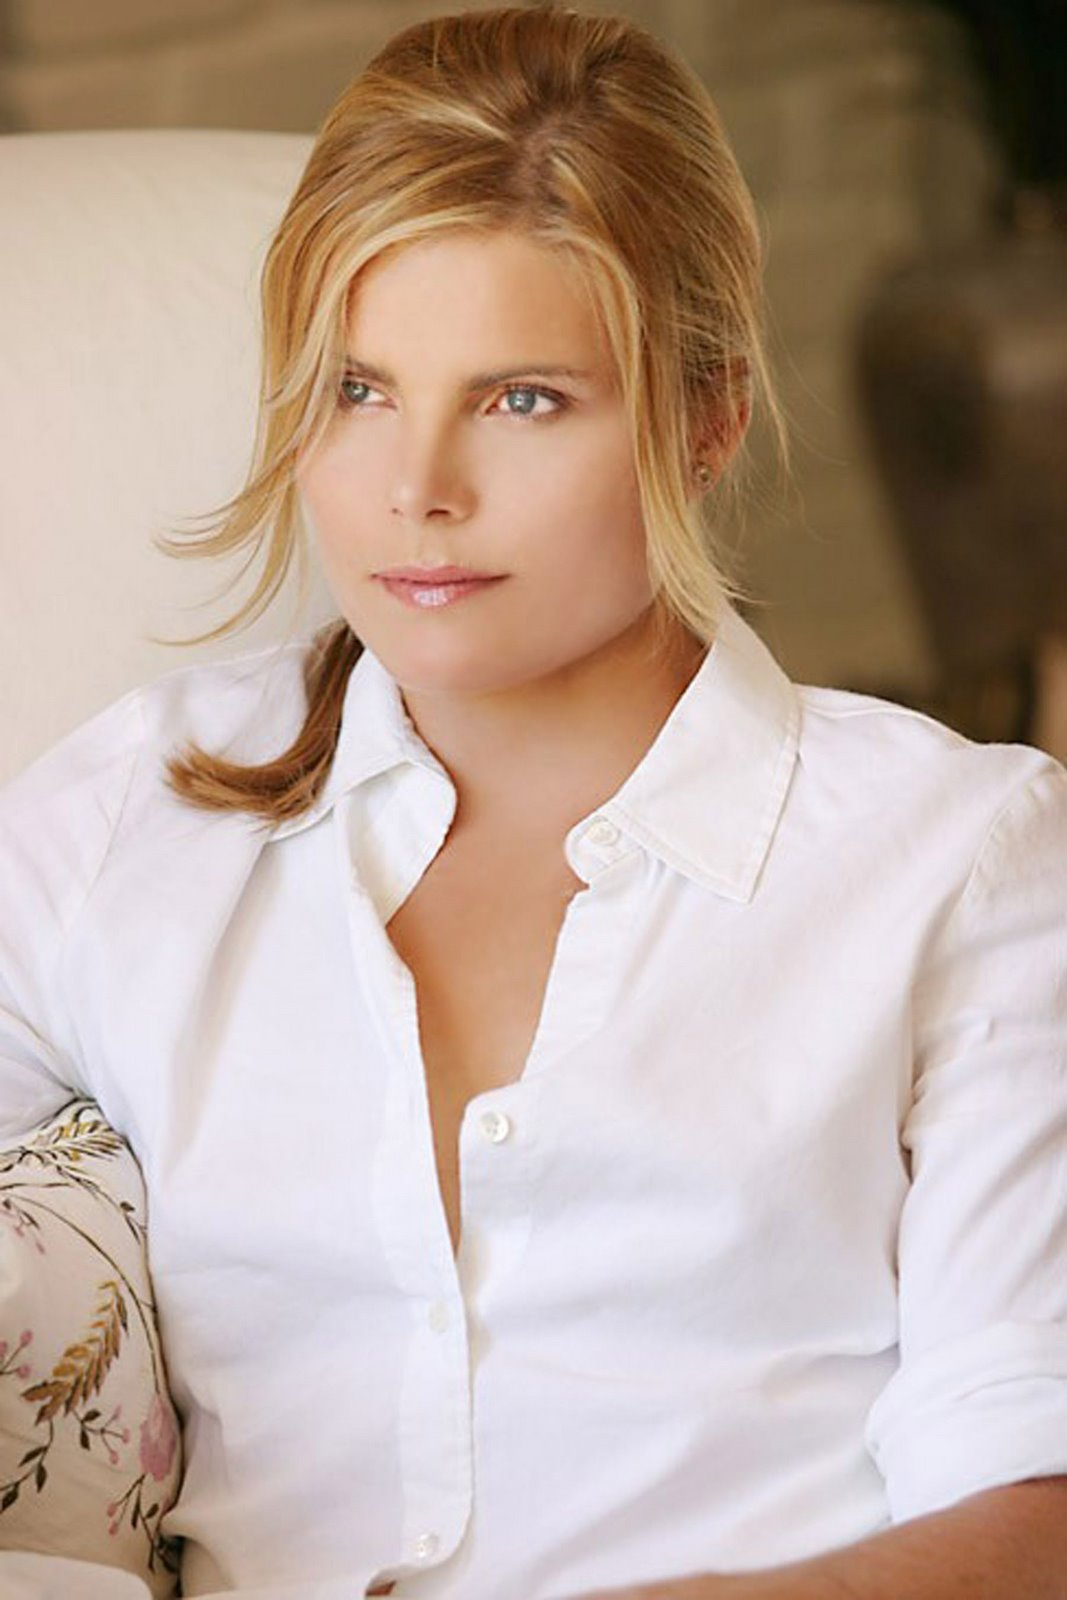 TRAVELERS ADVANTAGE MARIEL HEMINGWAY